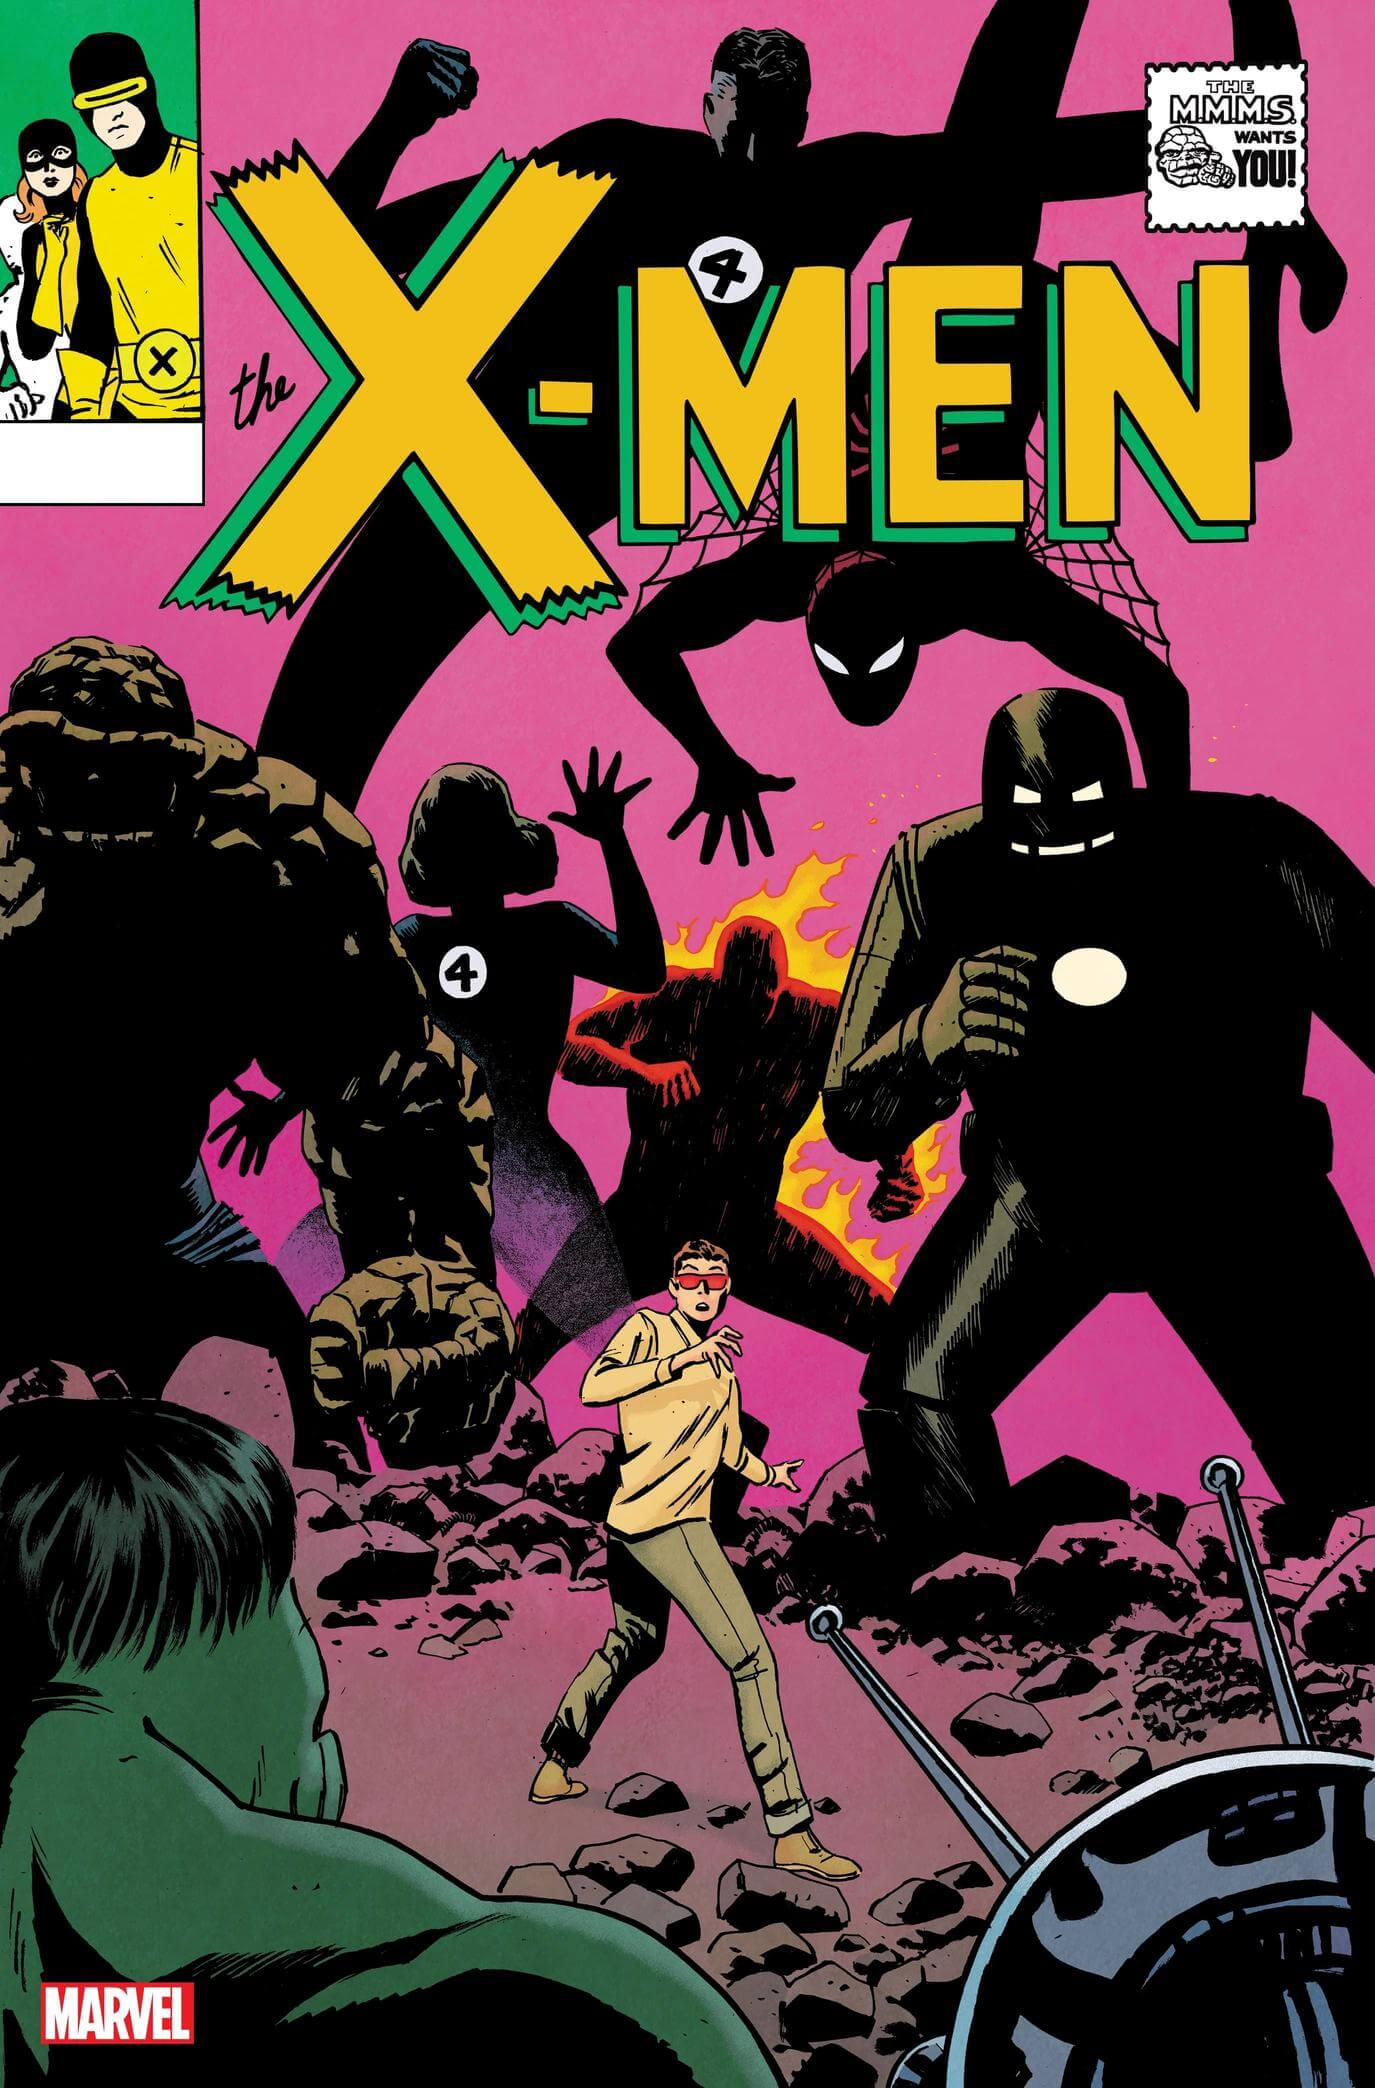 Tom Reilly Variant cover. Depicts an adolescent Scott Summers surrounded by dark and looming figures of the Fantastic Four, Iron Man, and Spiderman